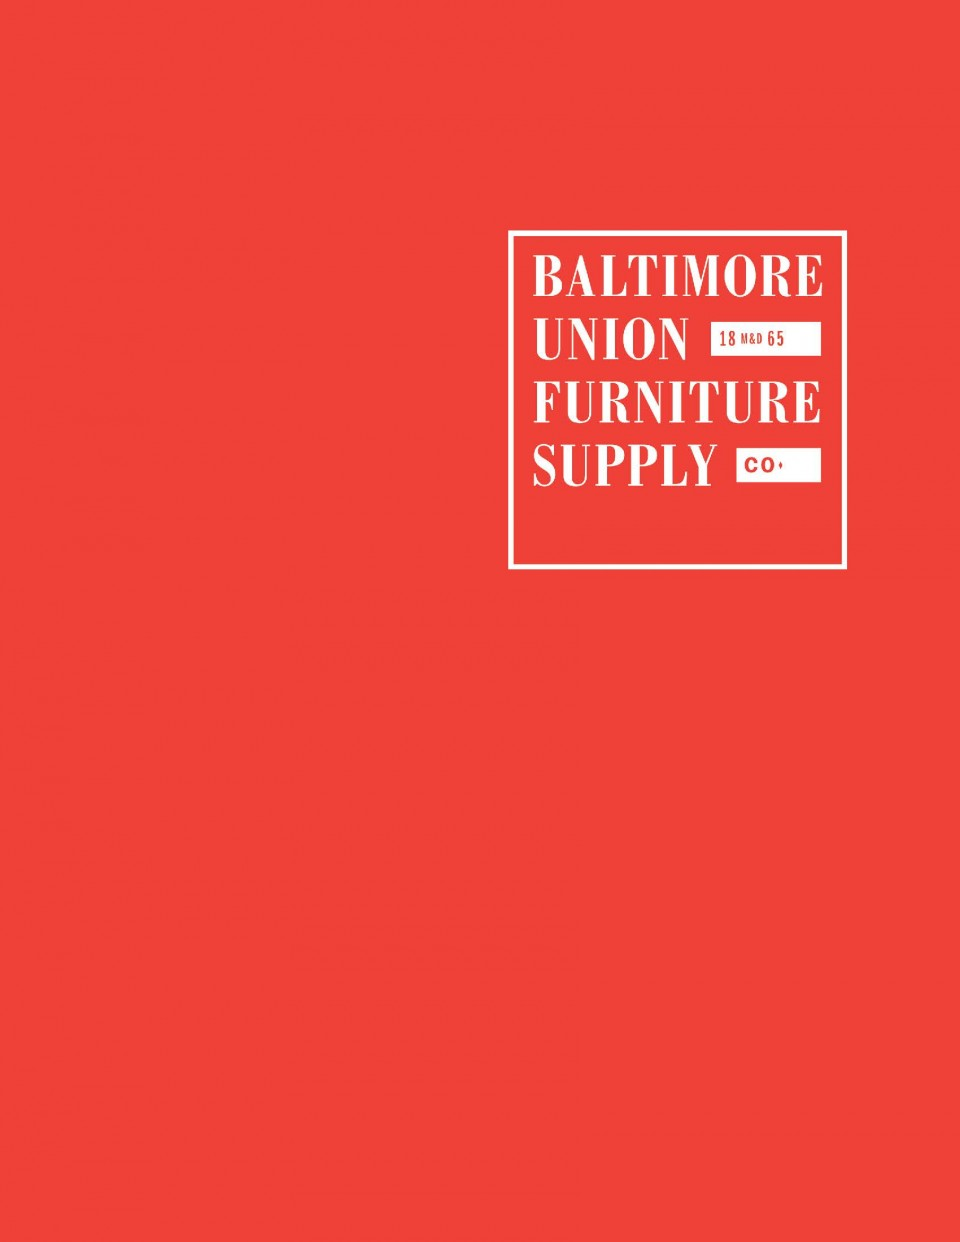 Andrew Gallagher - Baltimore Union Furniture Supply